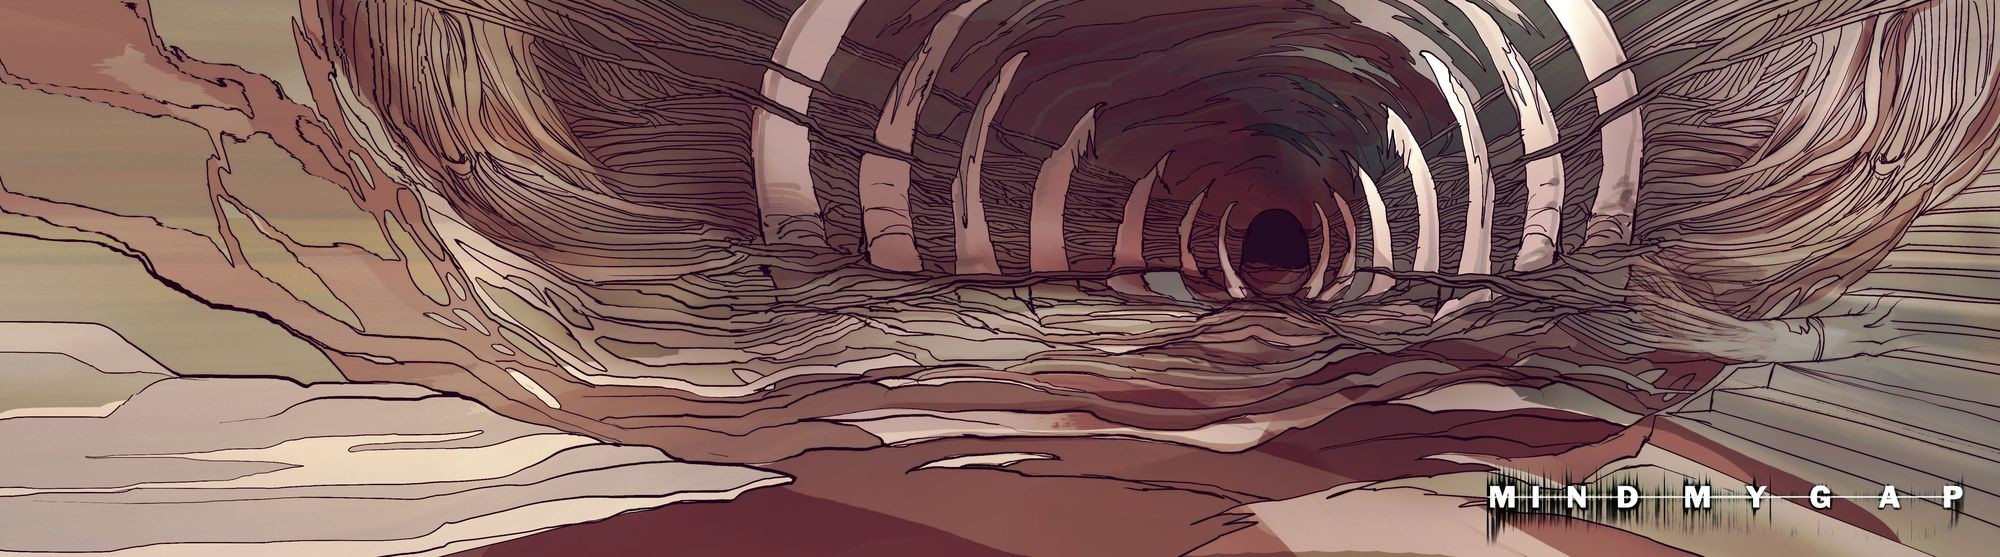 Sewers Sketch 03